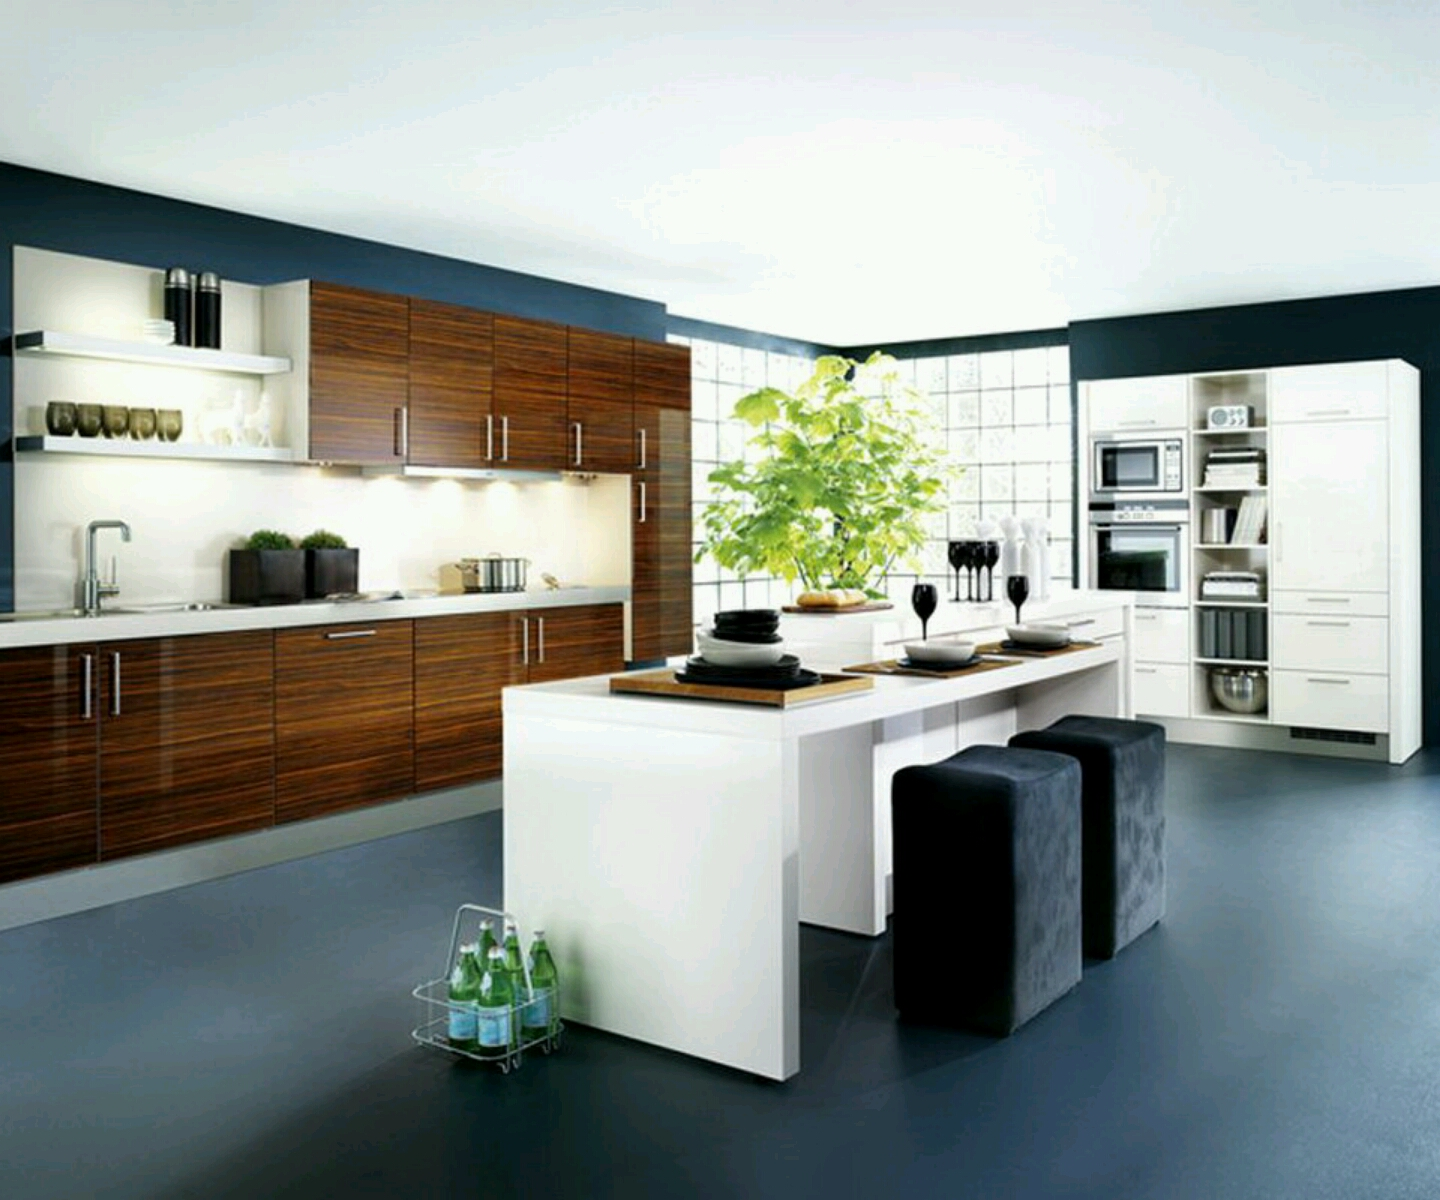 New home designs latest kitchen cabinets designs modern Home kitchen